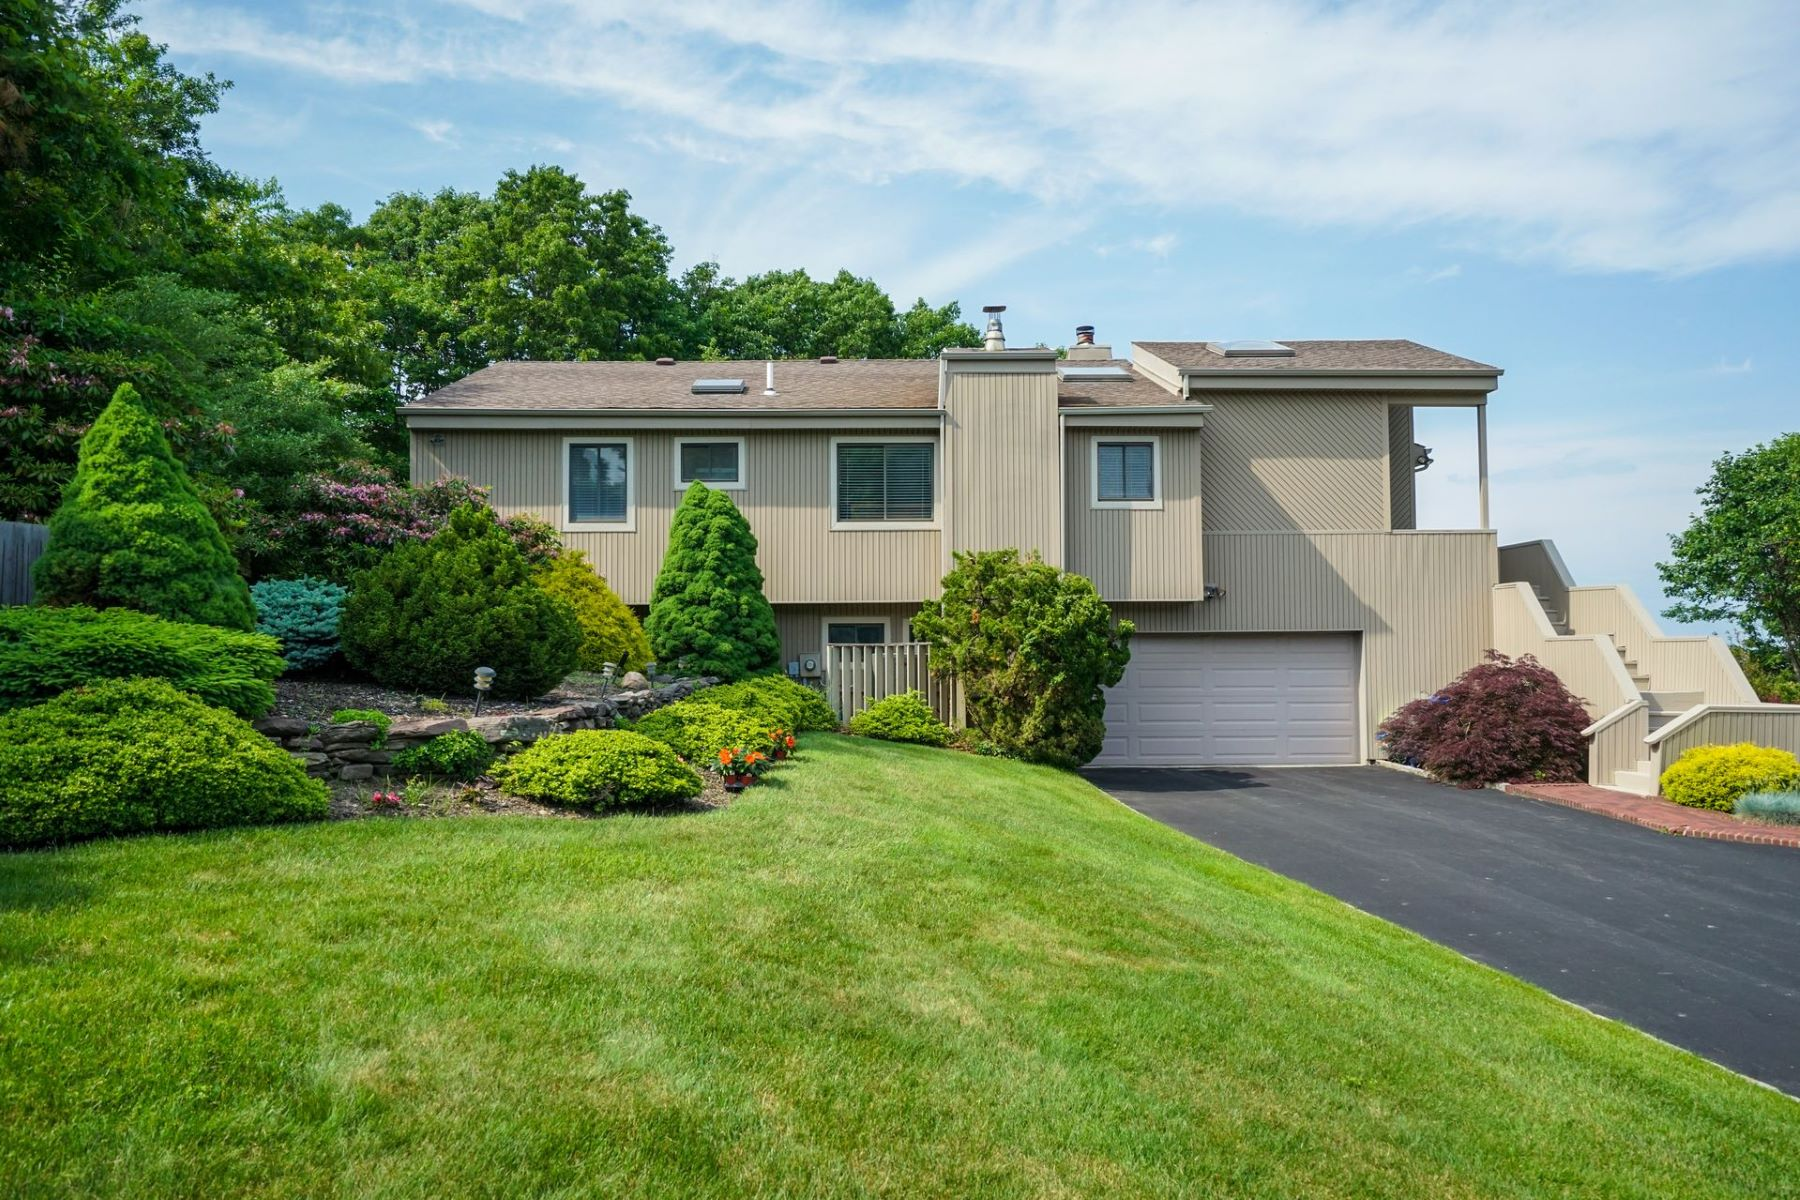 Single Family Homes for Active at Port Jefferson 123 Nadia Ct Port Jefferson, New York 11777 United States